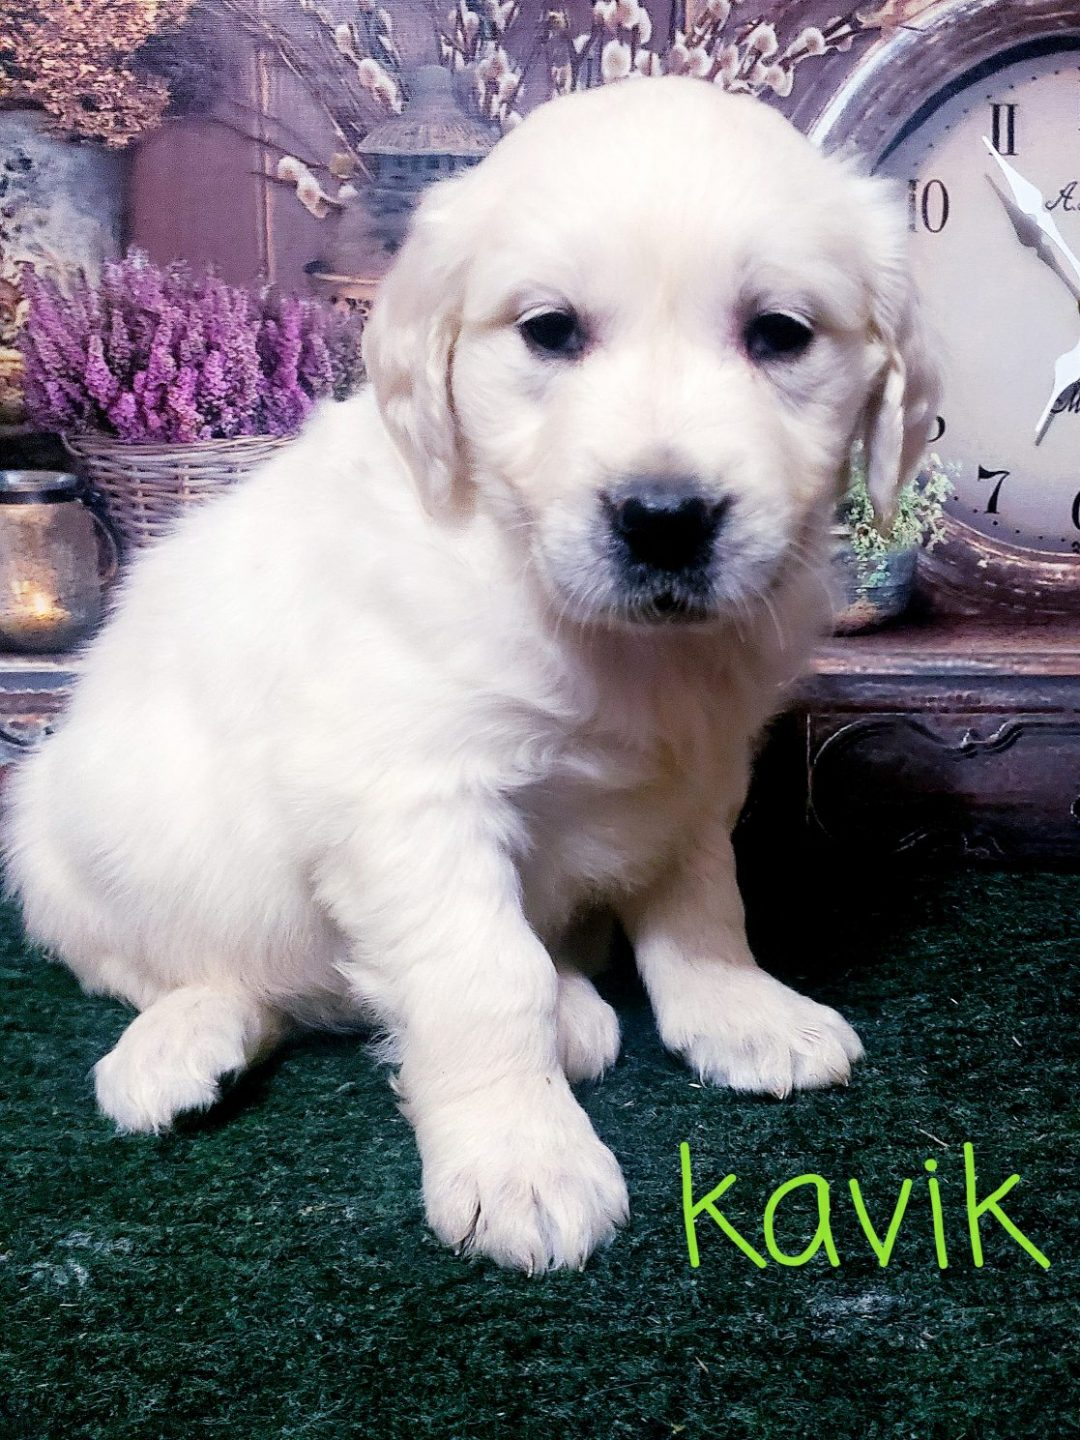 Kavik - AKC Golden Retriever male pupper for sale near South Wittley, Indiana